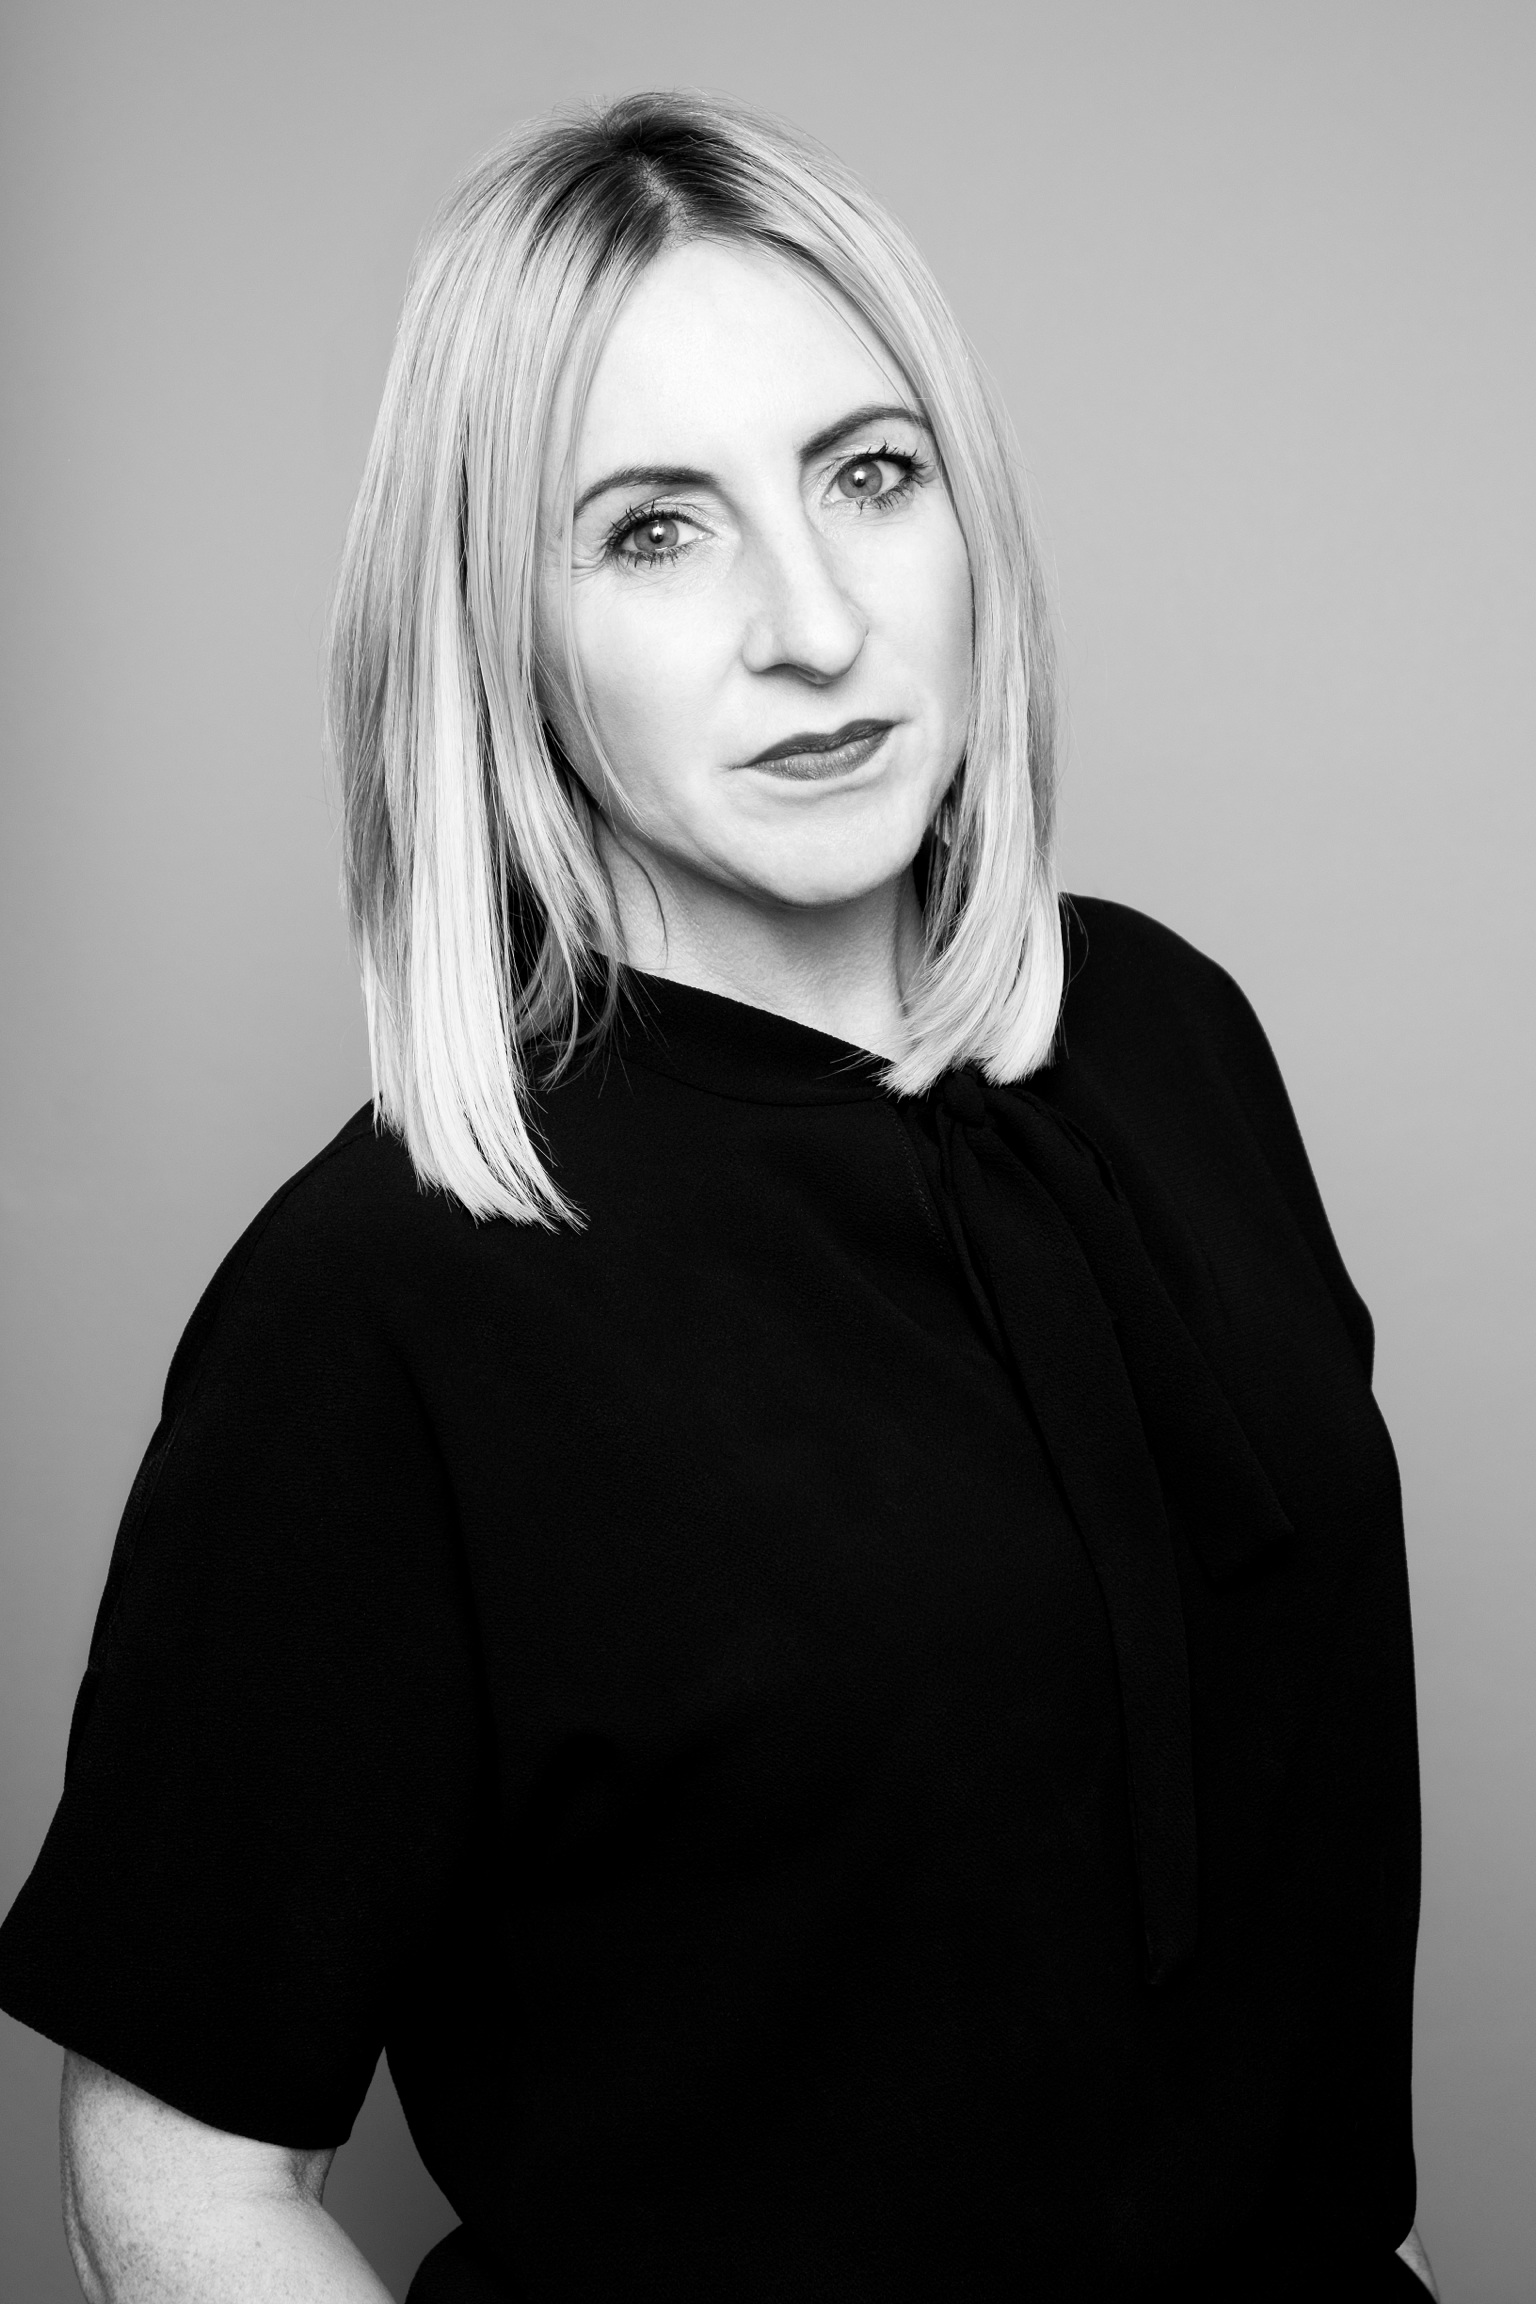 Affinage Ambassador Tracey Devine Smith Receives Award from The Fellowship of British Hairdressing